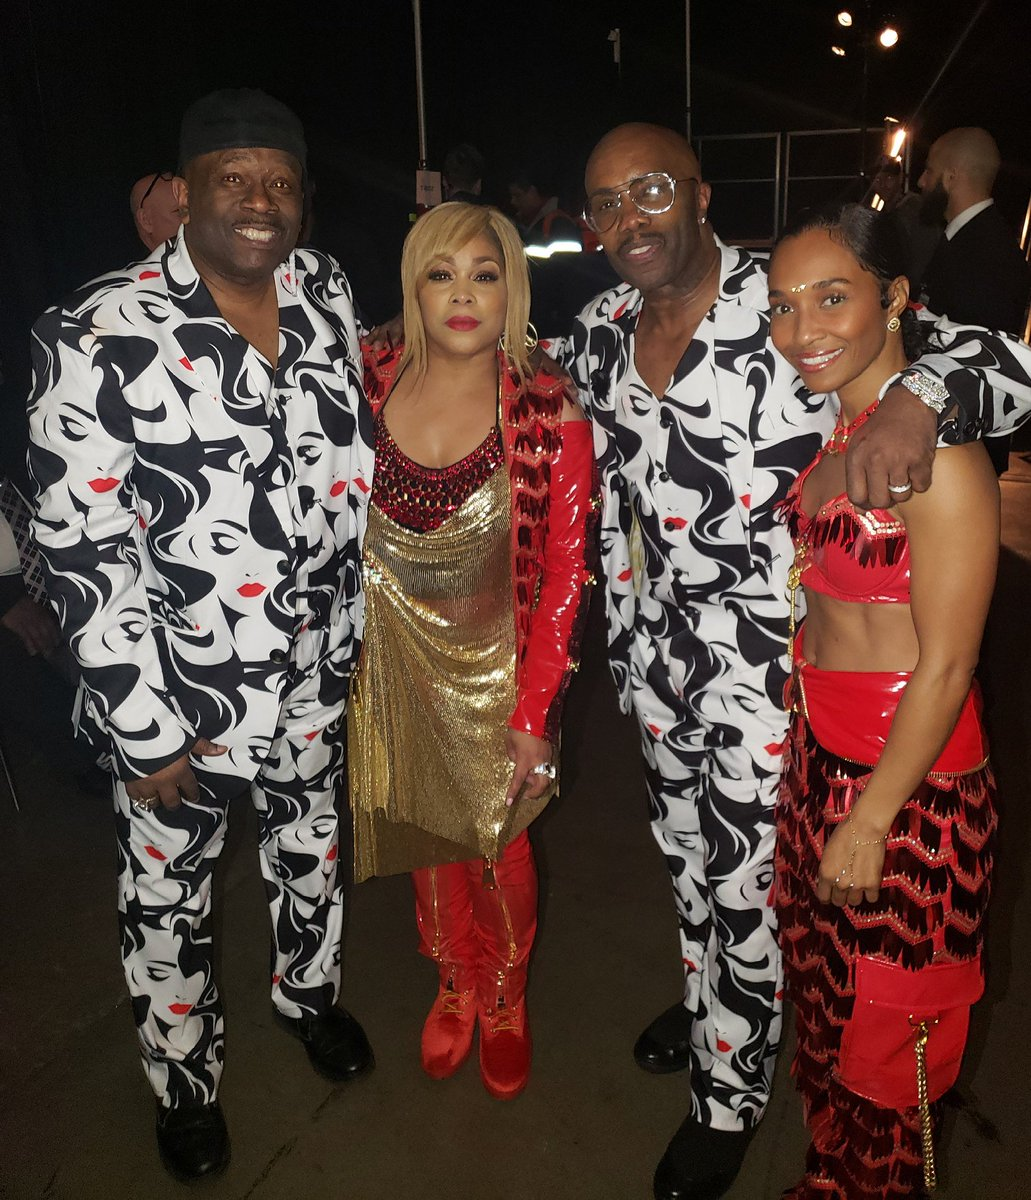 On the Passenger Side Of Your Best Friend's Ride at the Grammys: TBoz & Chilli of TLC with Bowlegged Lou & Paul Anthony of Full Force. #Grammy2019 #GRAMMYs